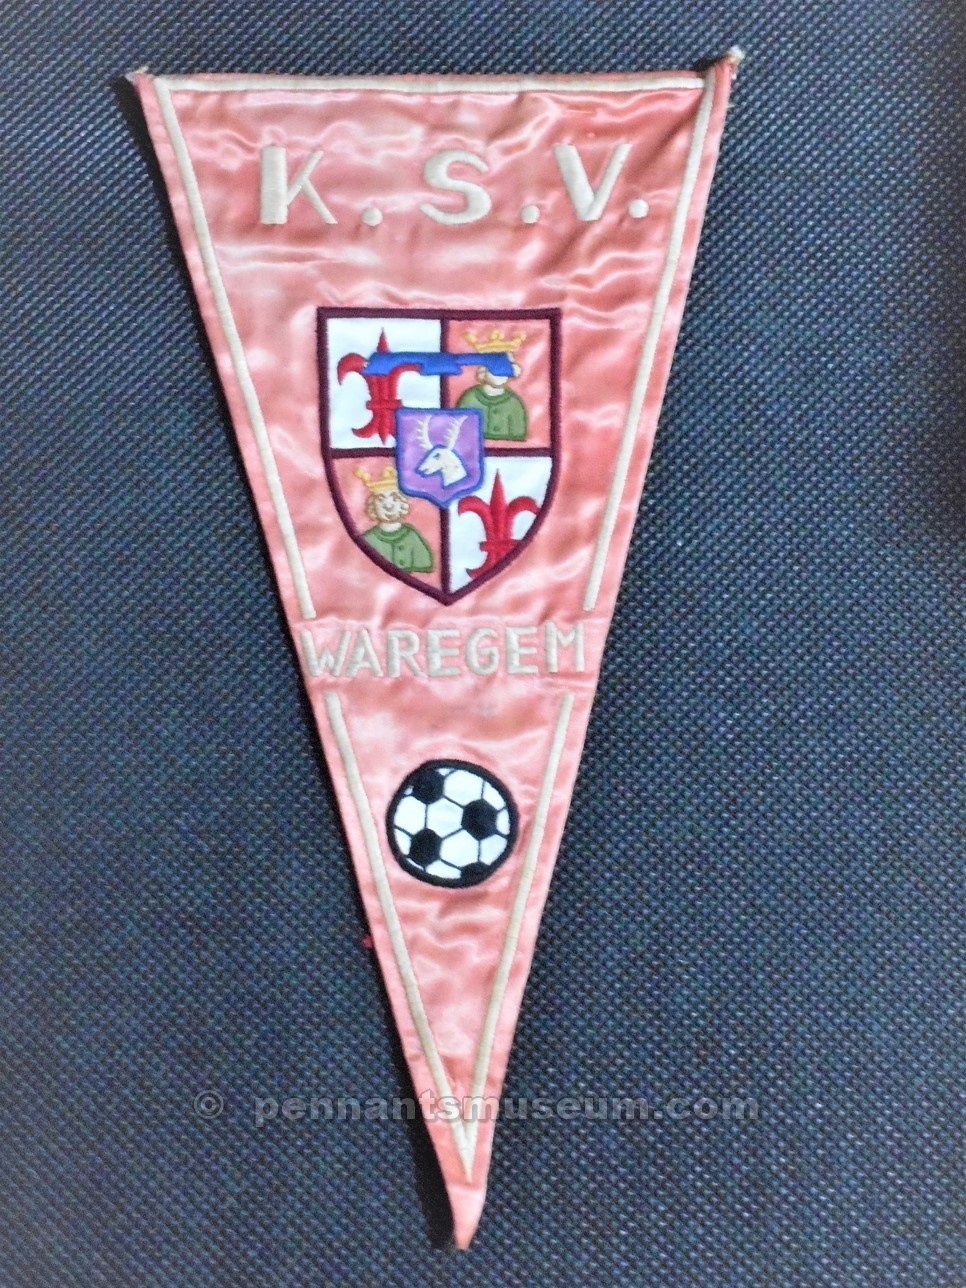 WAREGEM-K.S.V.-Embroidered pennant in use late 60s